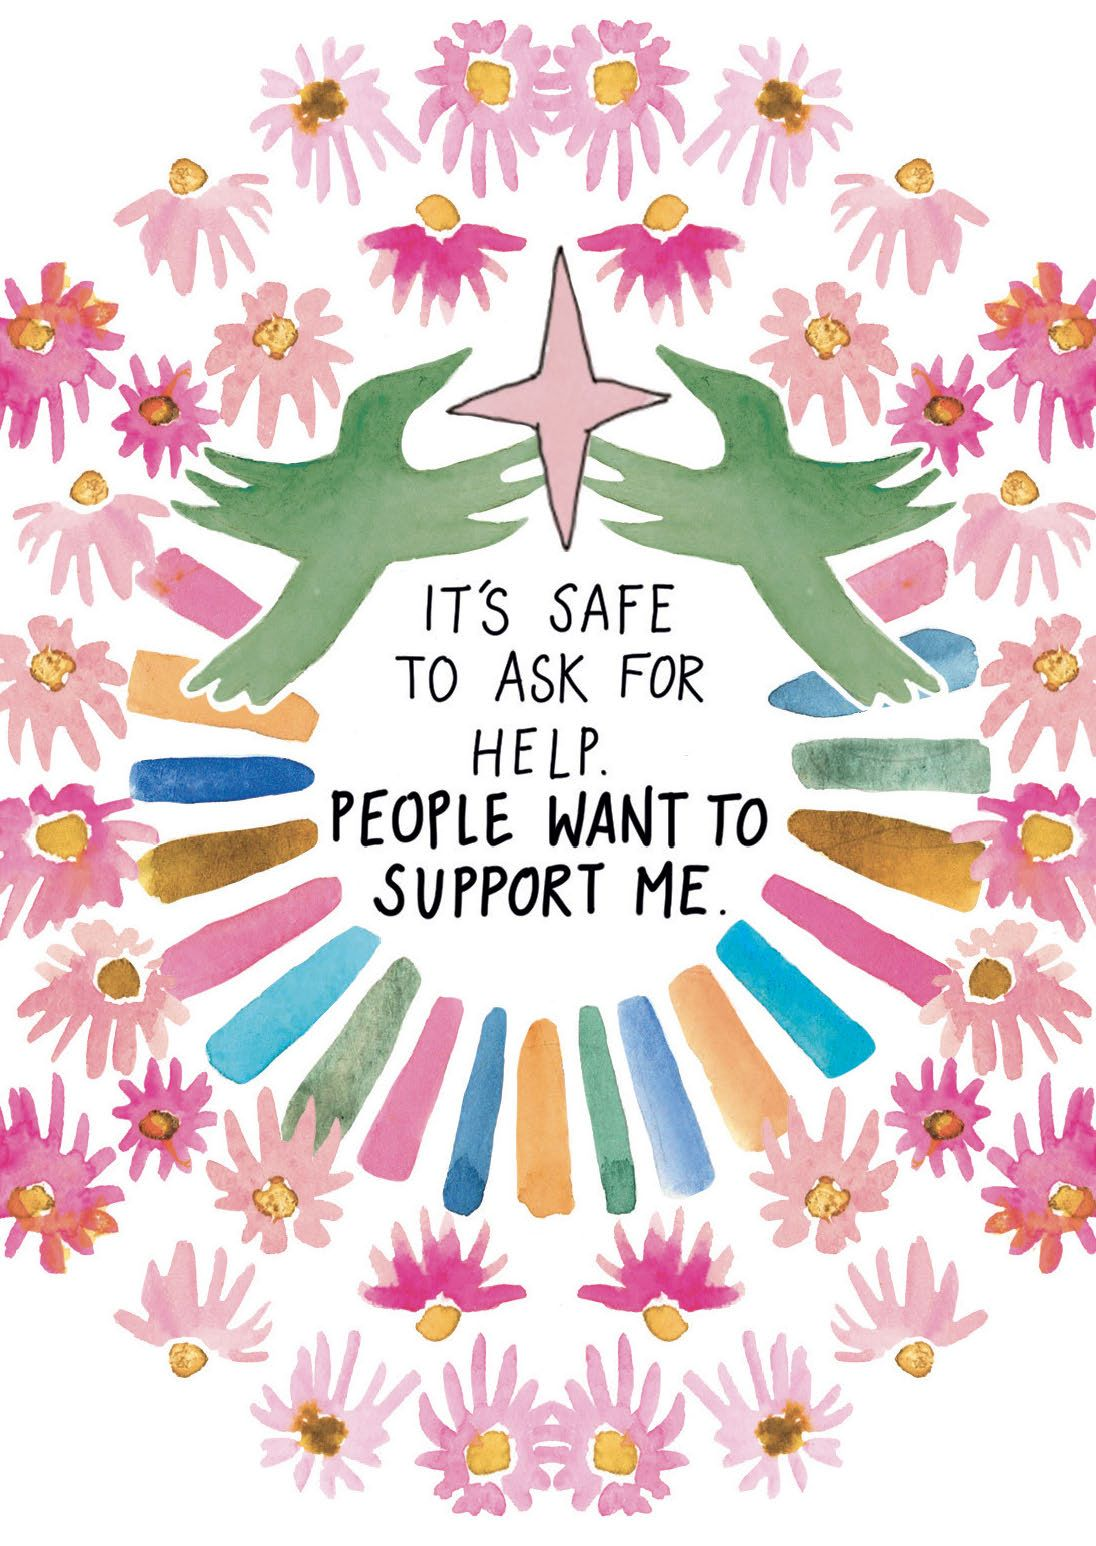 IT'S SAFE TO ASK FOR HELP. PEOPLE WANT TO SUPPORT ME.